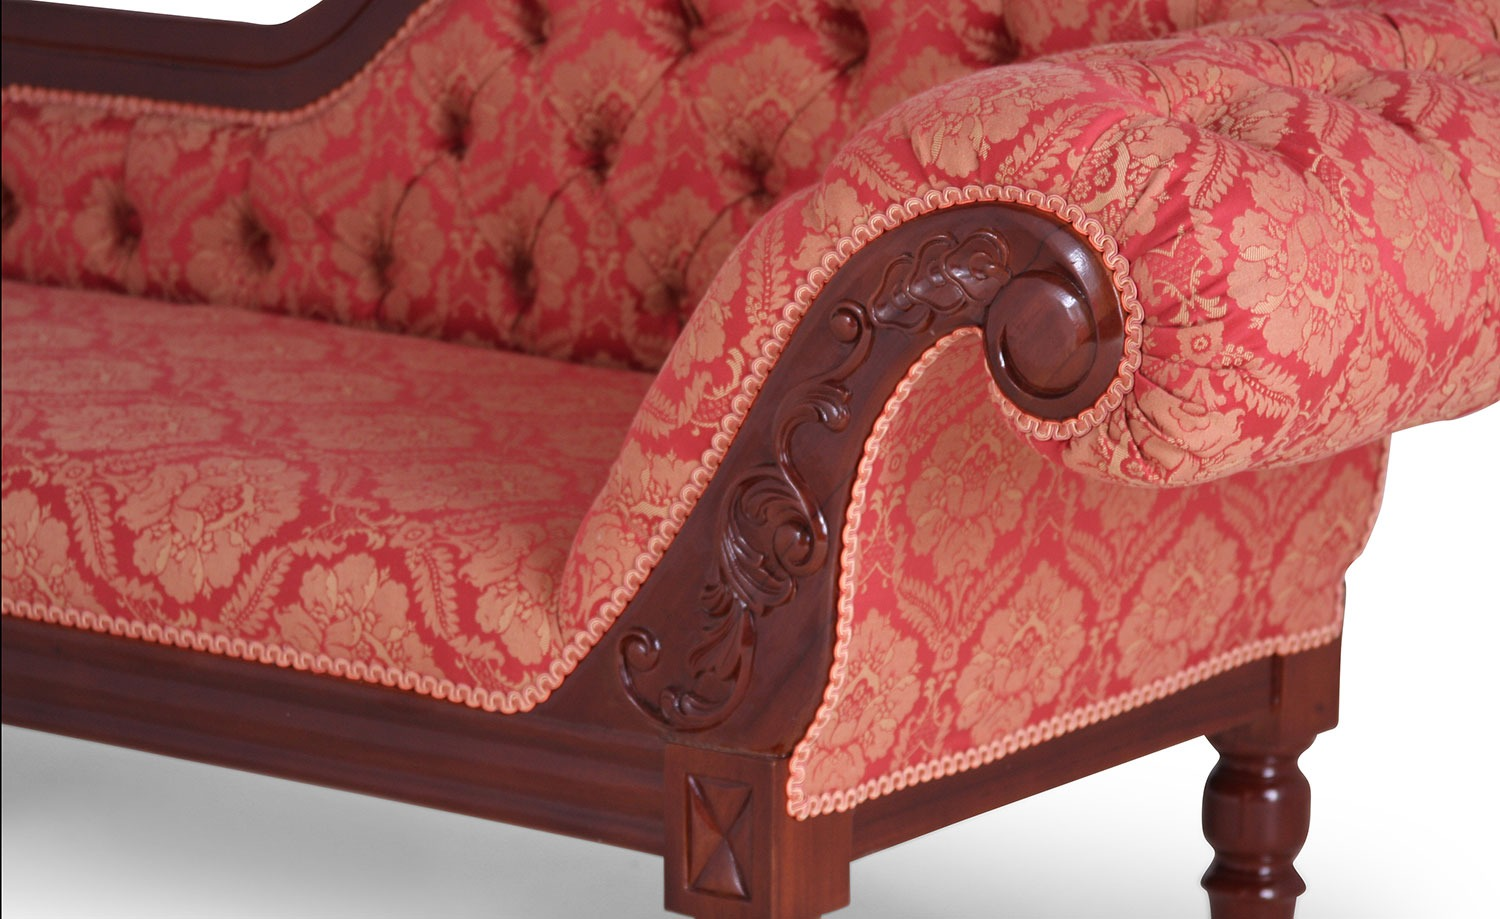 Mahogany chaise longue in red damask